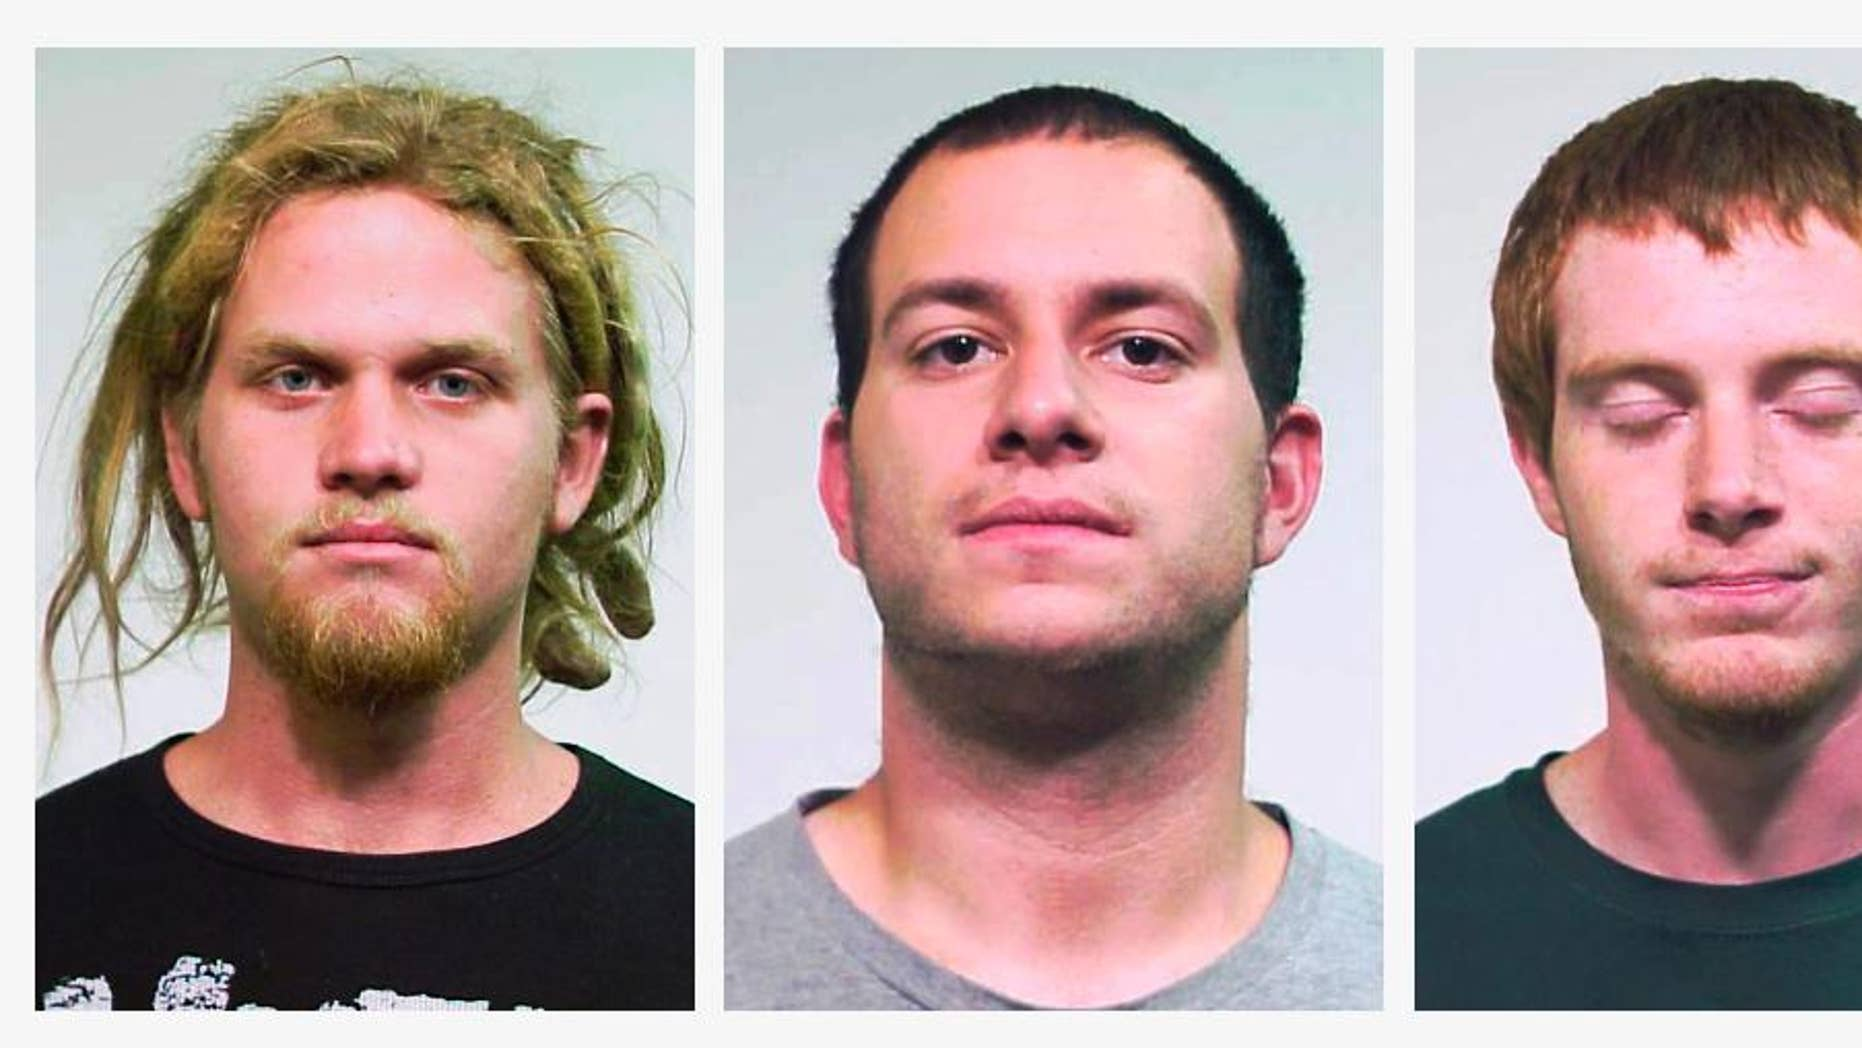 FILE - This combo made of undated file photos provided by the Chicago Police Department shows from left, Brent Vincent Betterly, of Oakland Park, Fla., Jared Chase, of Keene, N.H., and Brian Church, of Ft. Lauderdale, Fla. A jury in Chicago acquitted the three NATO summit protesters on Feb. 7, 2014 on Illinois terrorism charges, but did convict them on lesser arson counts. Sentencing for the three is expected to begin Friday, April 25, 2014.  (AP Photo/Chicago Police Department, File)